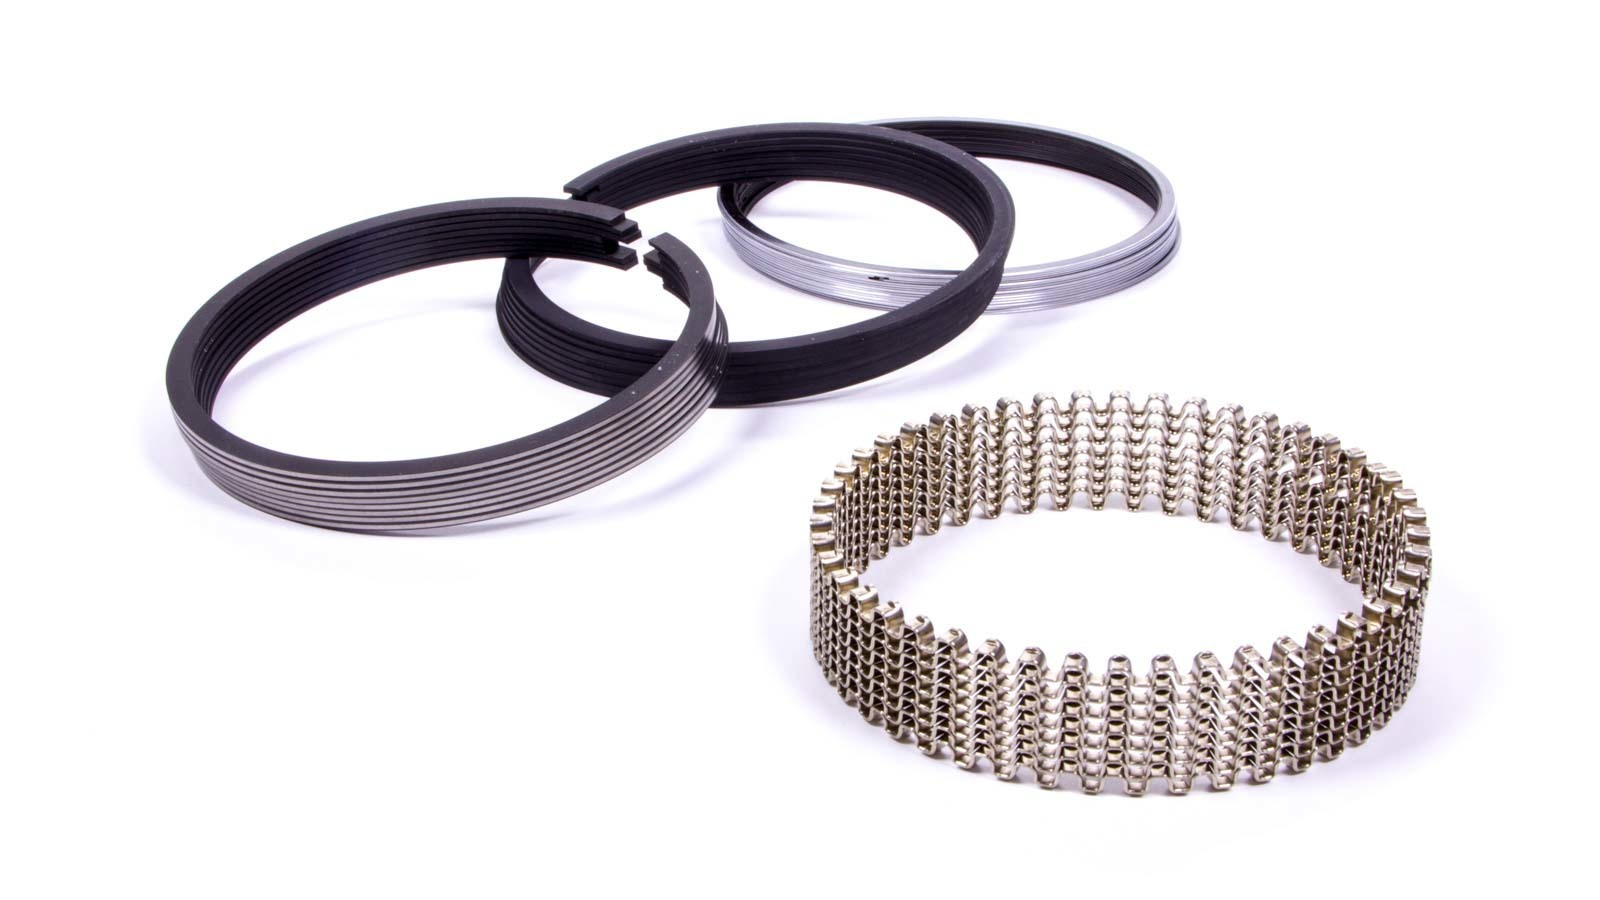 JE Pistons S100S8-4530-5 Piston Rings, Sportsman Series, 4.530 in Bore, File Fit, 1/16 x 1/16 x 3/16 in Thick, Standard Tension, Plasma Moly, 8 Cylinder, Kit